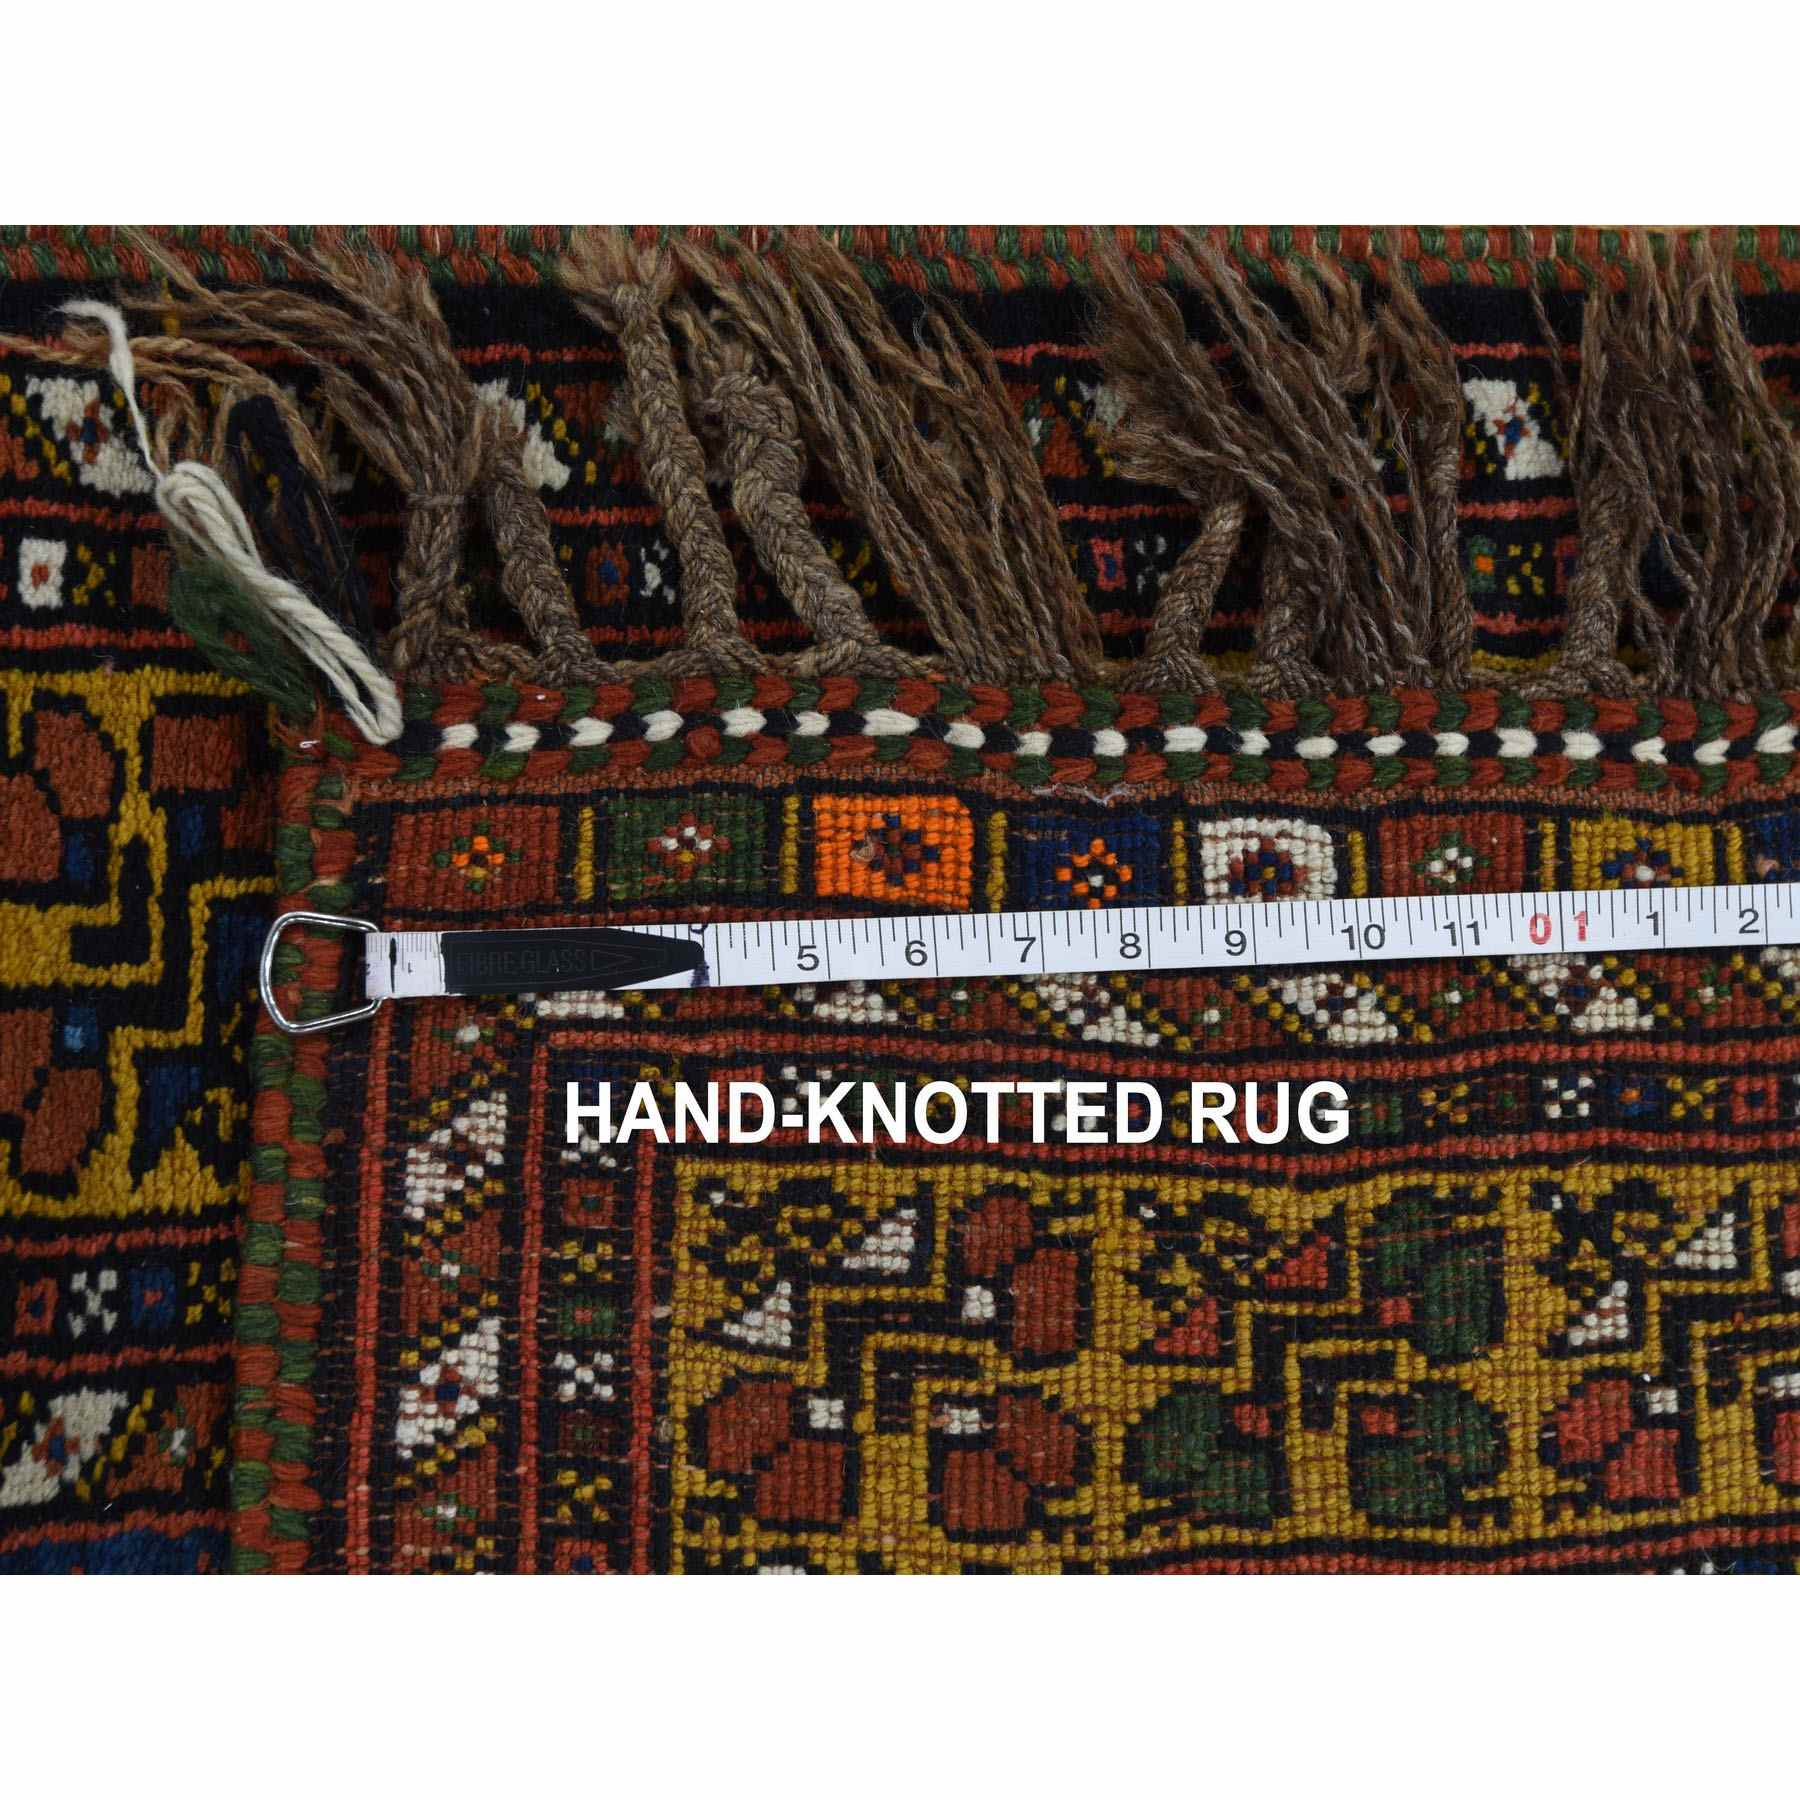 Antique-Hand-Knotted-Rug-242405